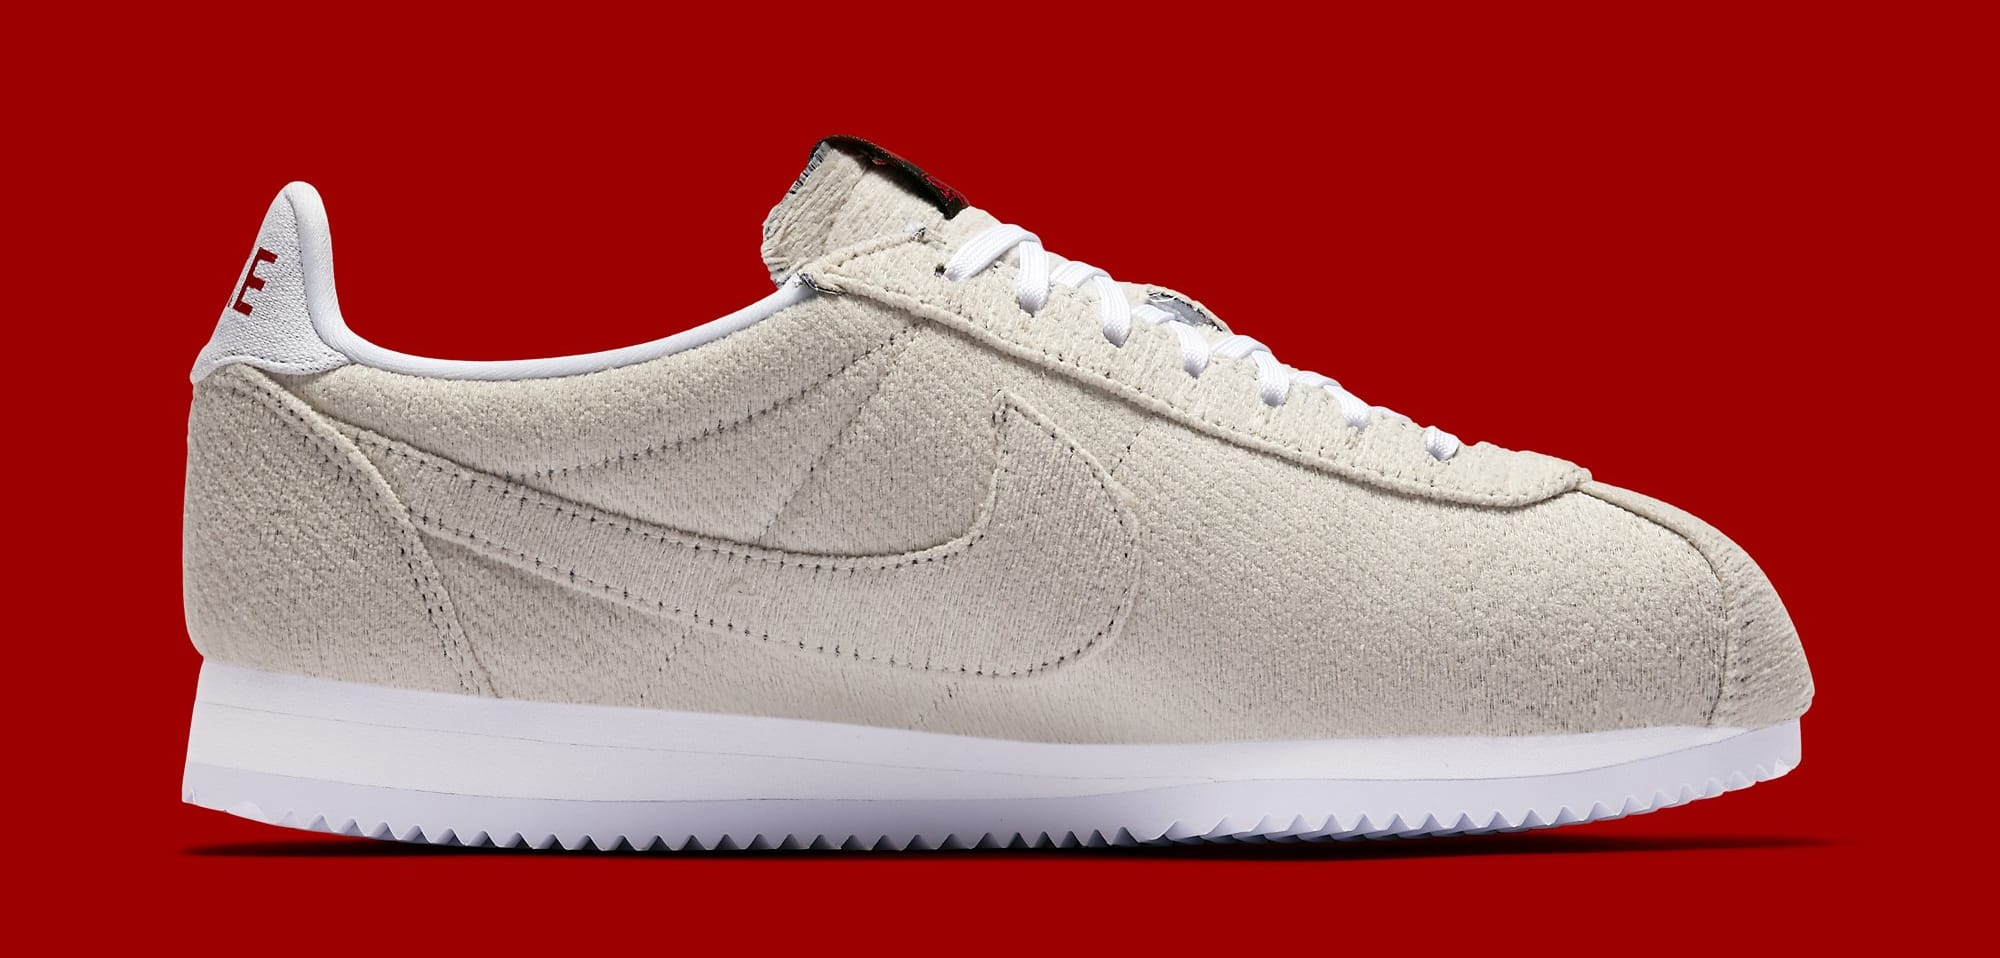 Stranger Things x Nike Cortez 'Starcourt Mall' CJ6107-100 (Medial)